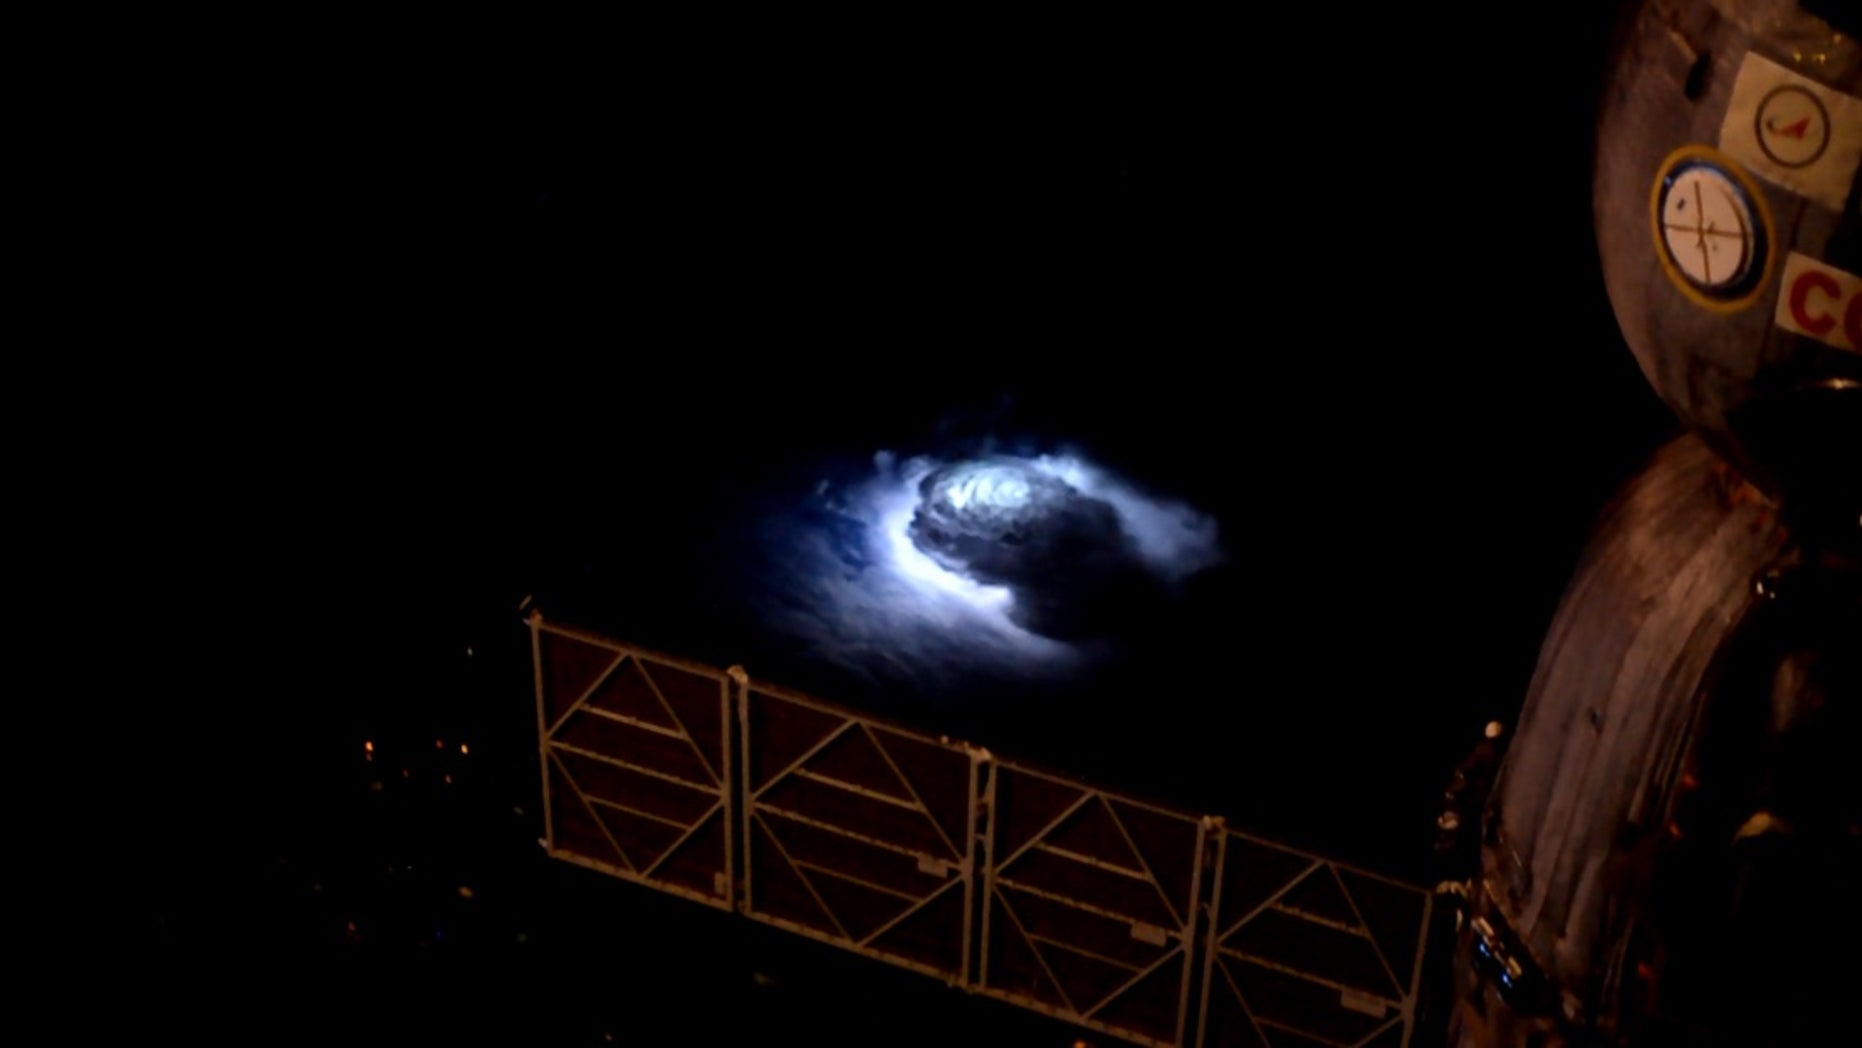 Mile-wide features at the tops of thunderstorms are hard to study, but photos from the ISS reveal these sights in all their glory.